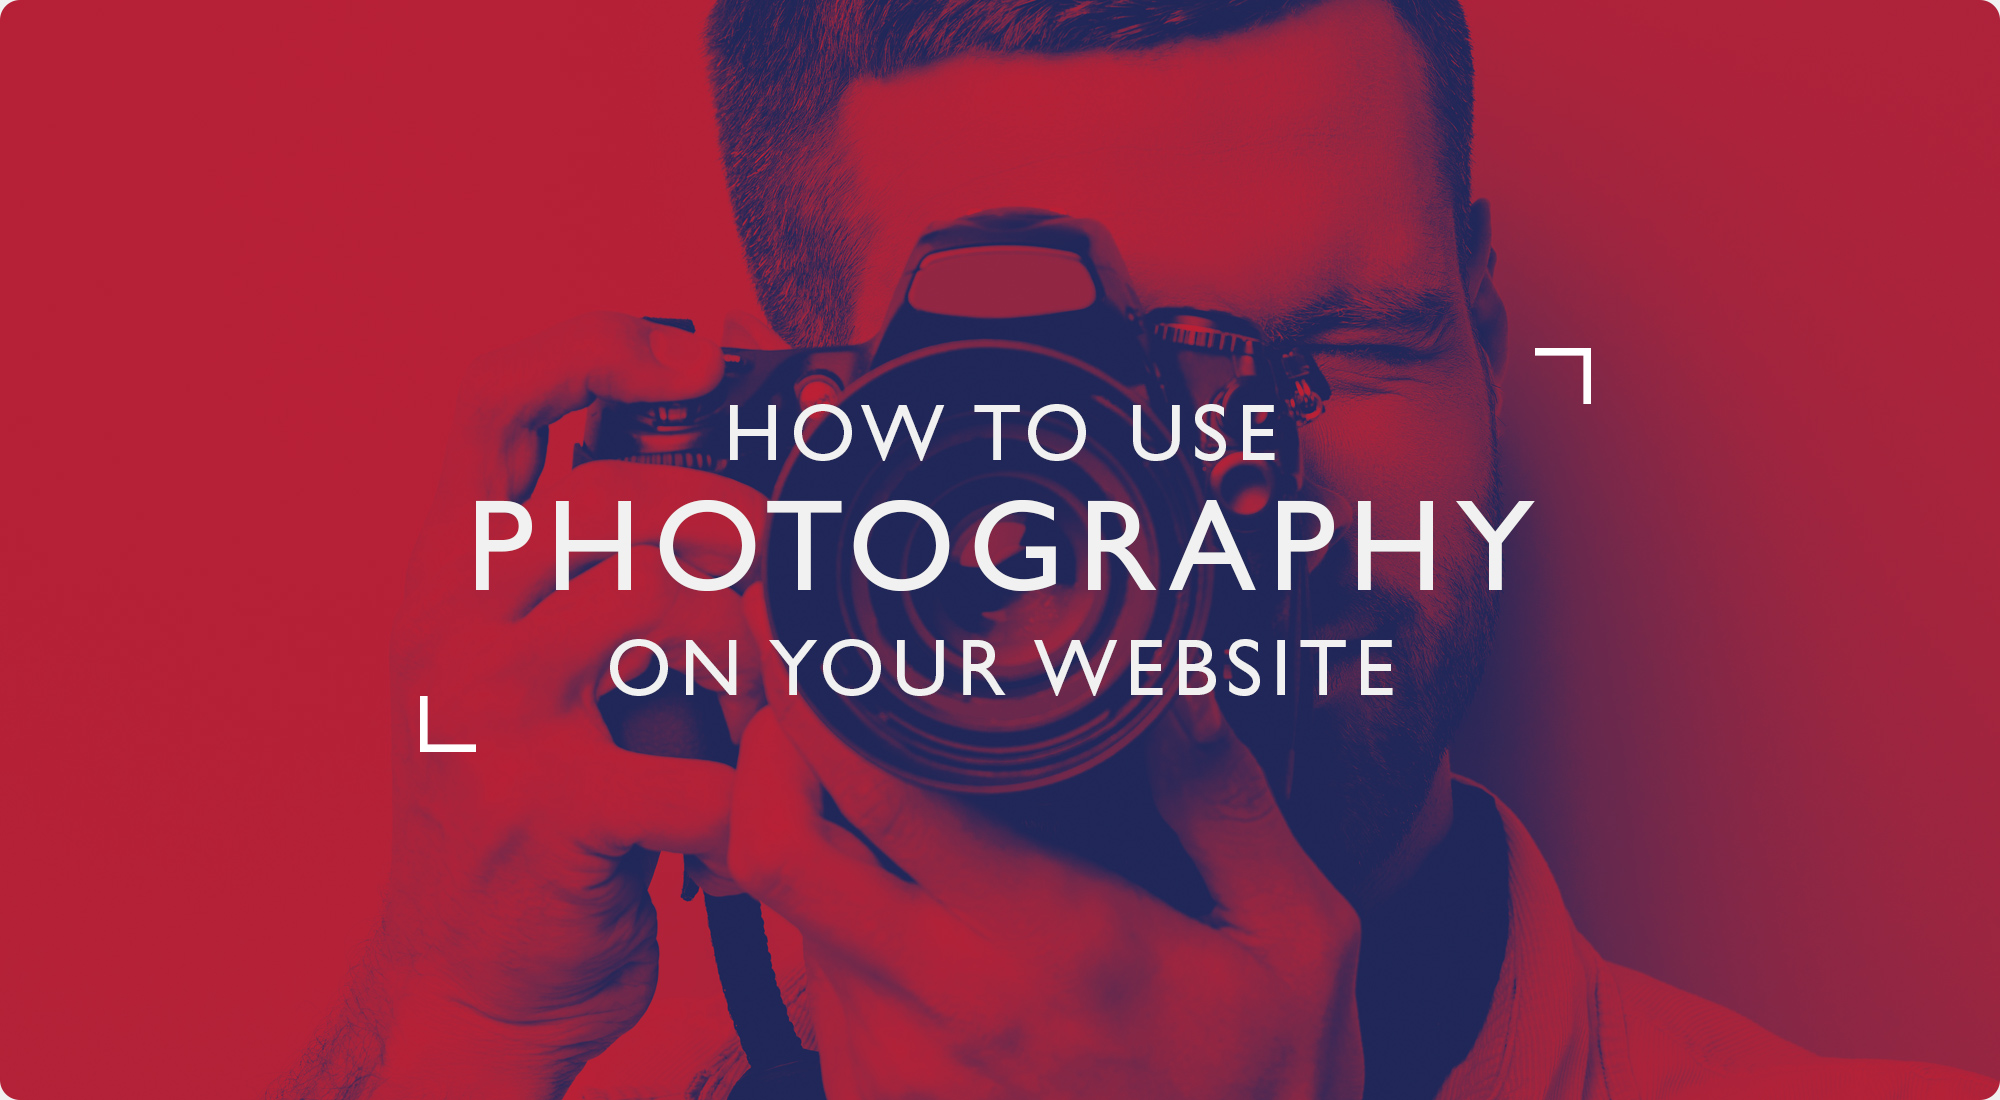 How to use photography on your website